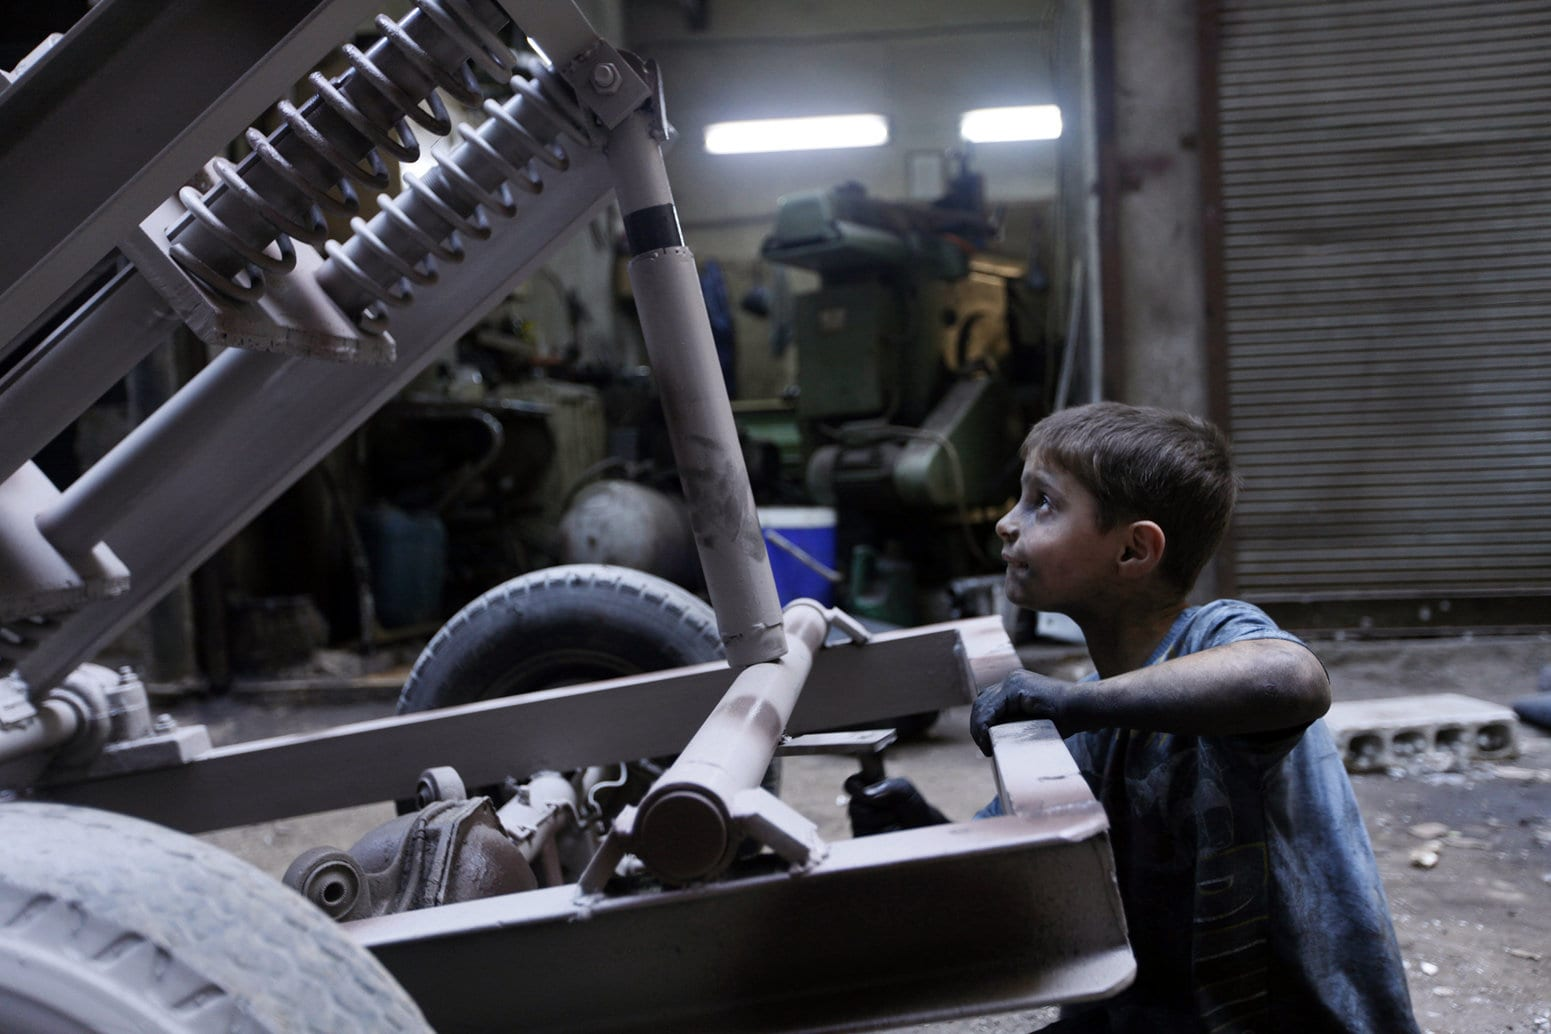 Issa, 10 years old, fixes a mortar launcher in a weapons factory of the Free Syrian Army in Aleppo, September 7, 2013. Issa works with his father in the factory for ten hours every day except on Fridays. (REUTERS/Hamid Khatib)